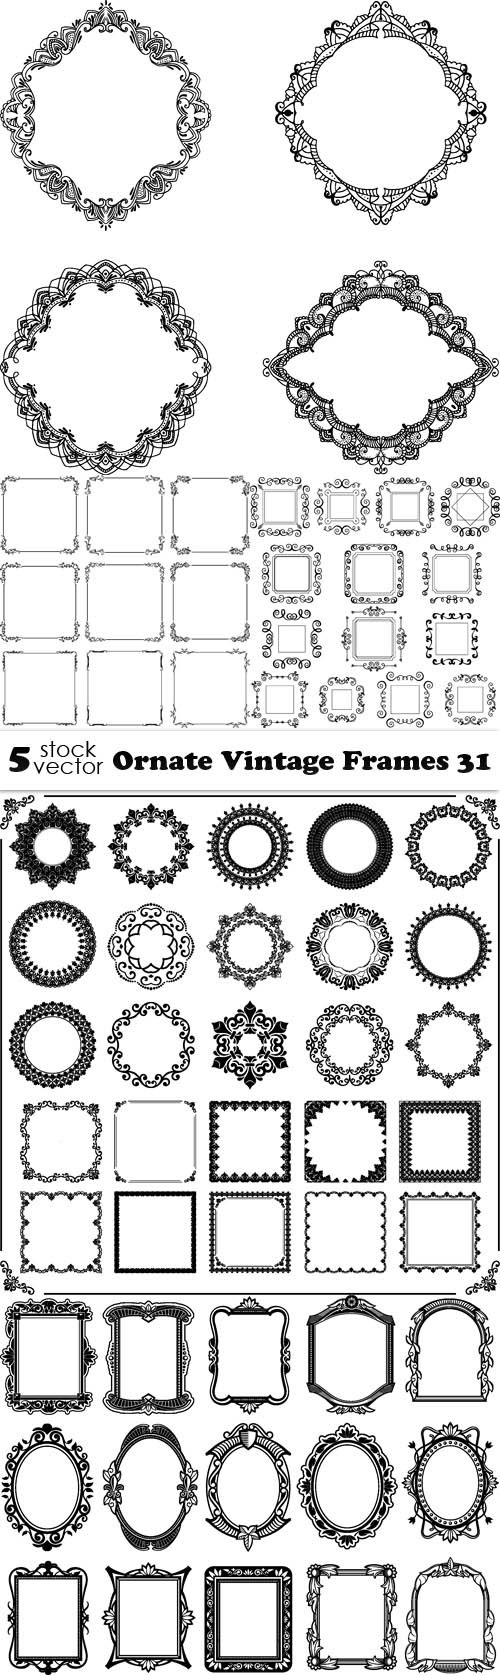 Vectors - Ornate Vintage Frames 31